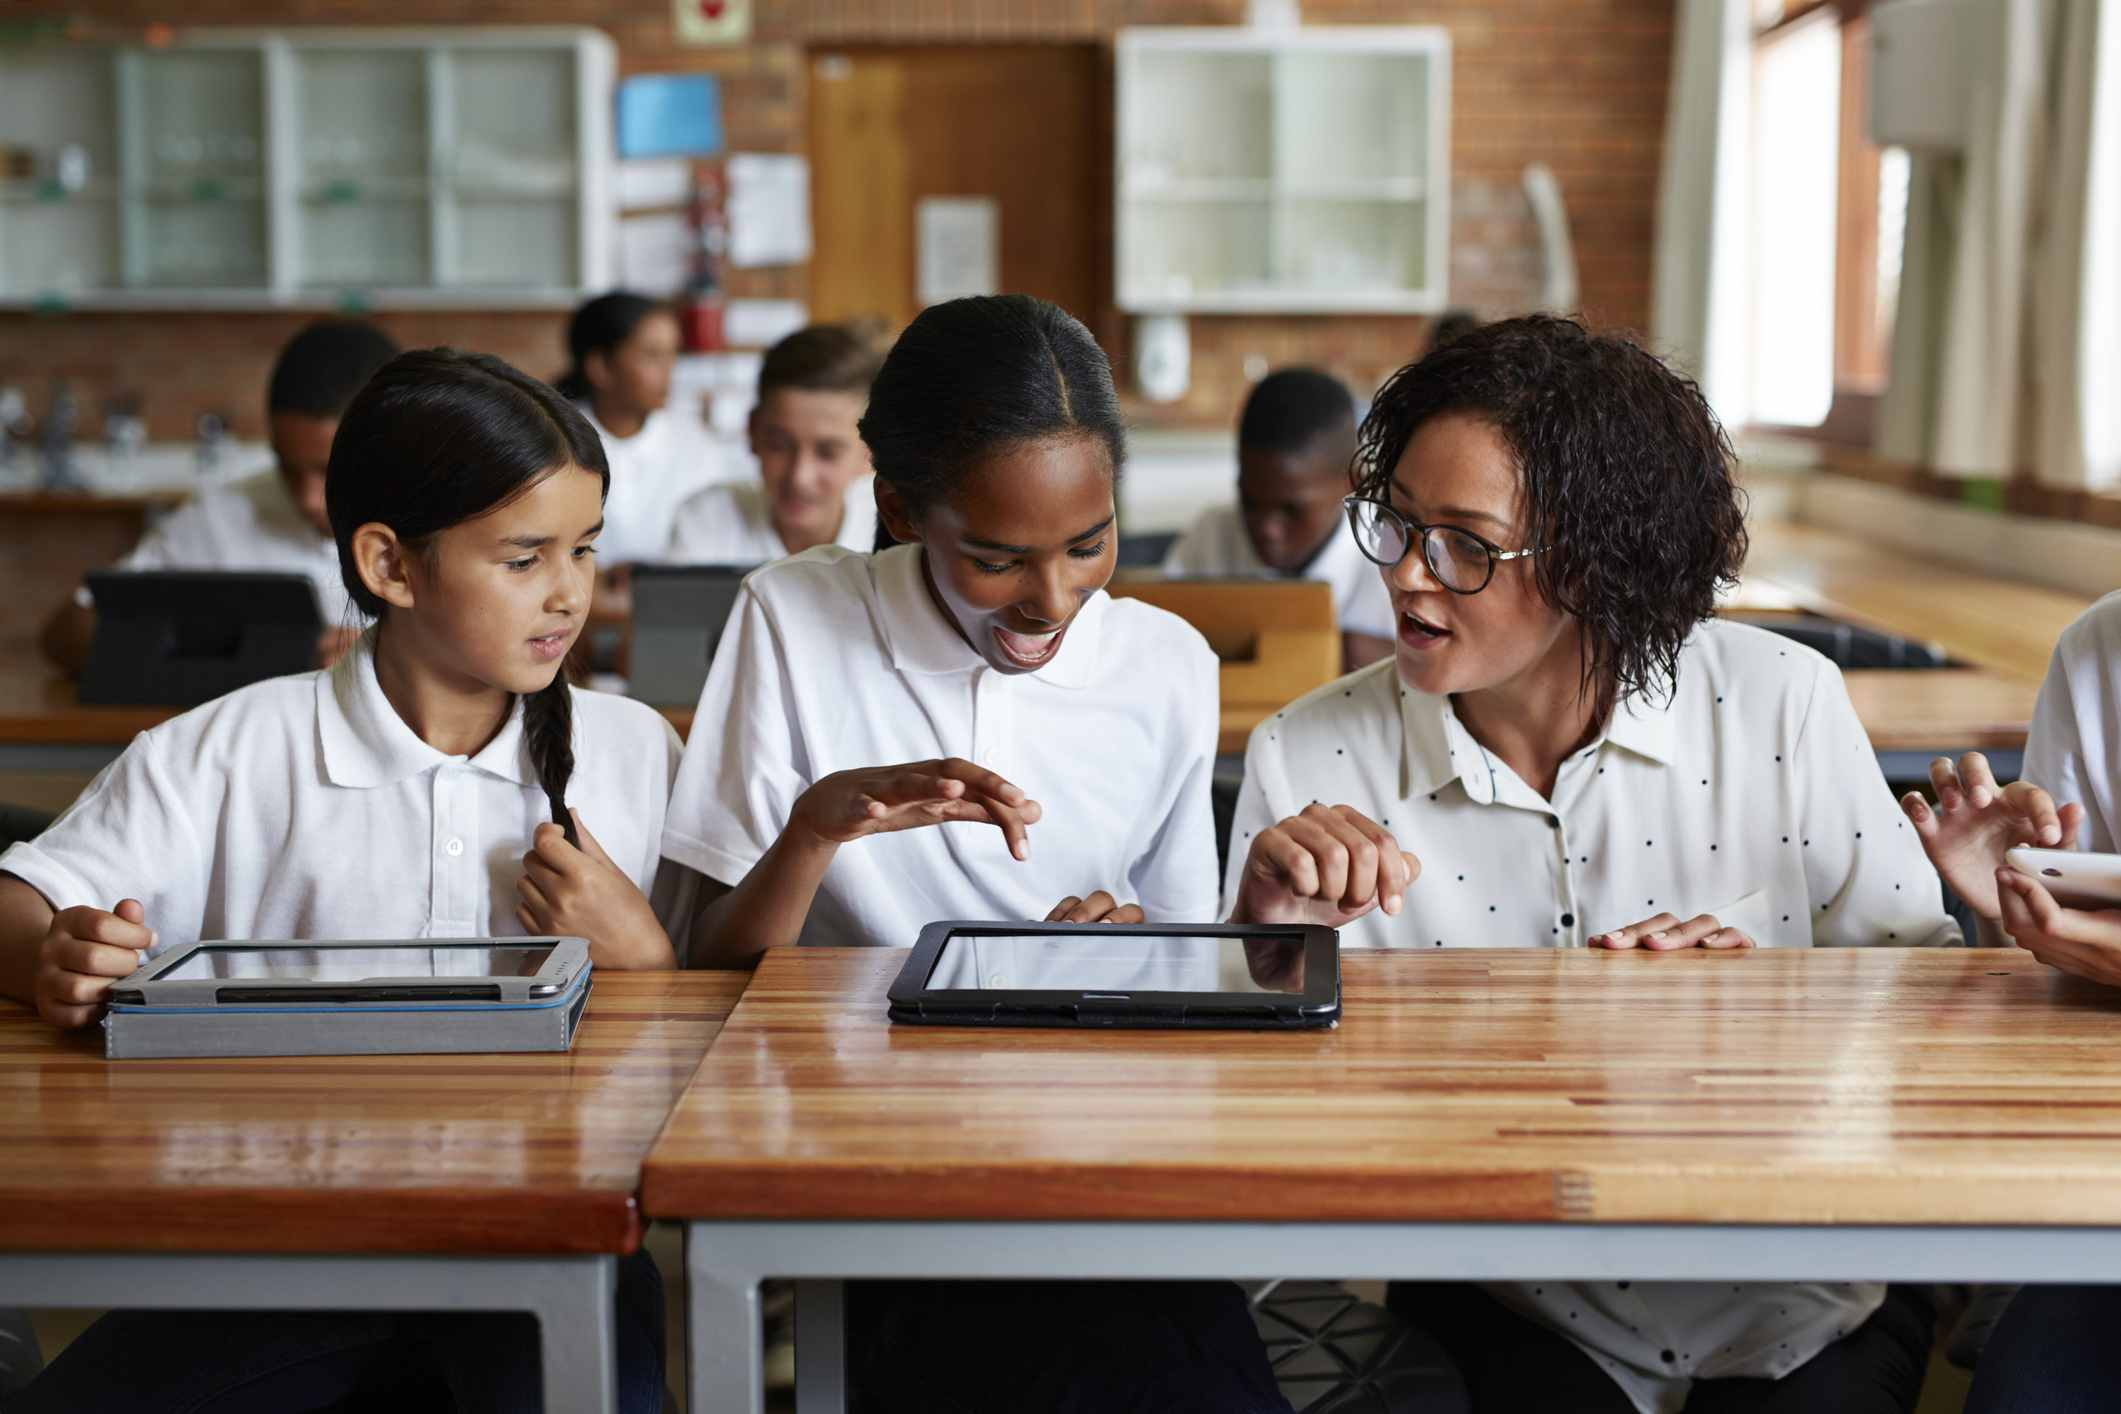 Teacher assting students working with tablets